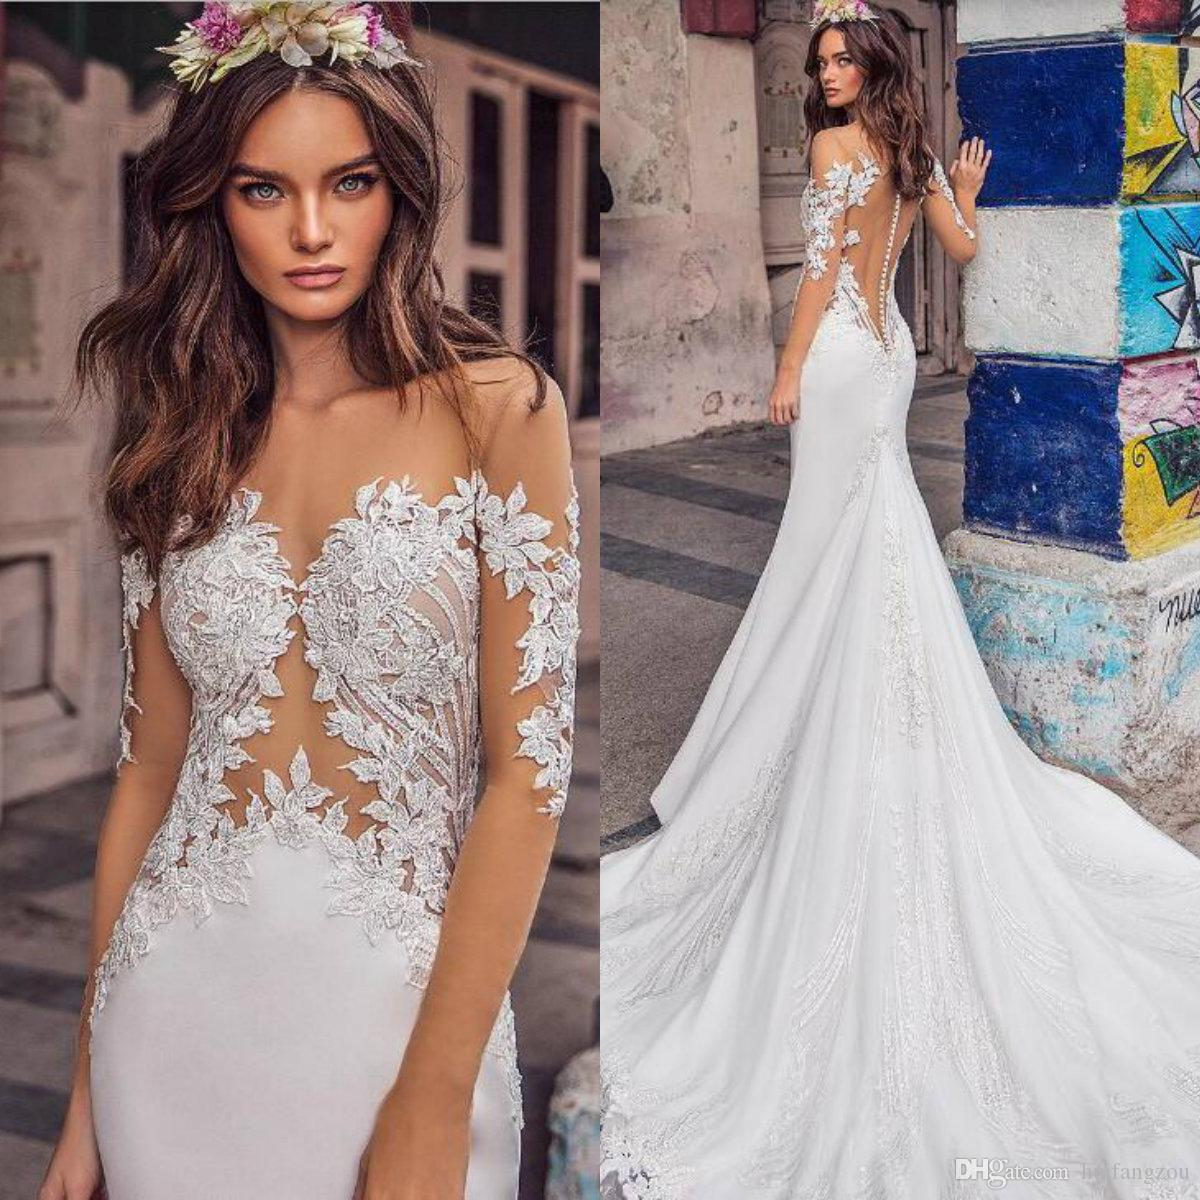 080f06745a 2019 Fashion Mermaid Wedding Dress Sheer Neck Long Sleeves Lace Appliqued Bridal  Gowns Buttons Back Sexy Beach Wedding Dresses Lace Wedding Gowns Long ...